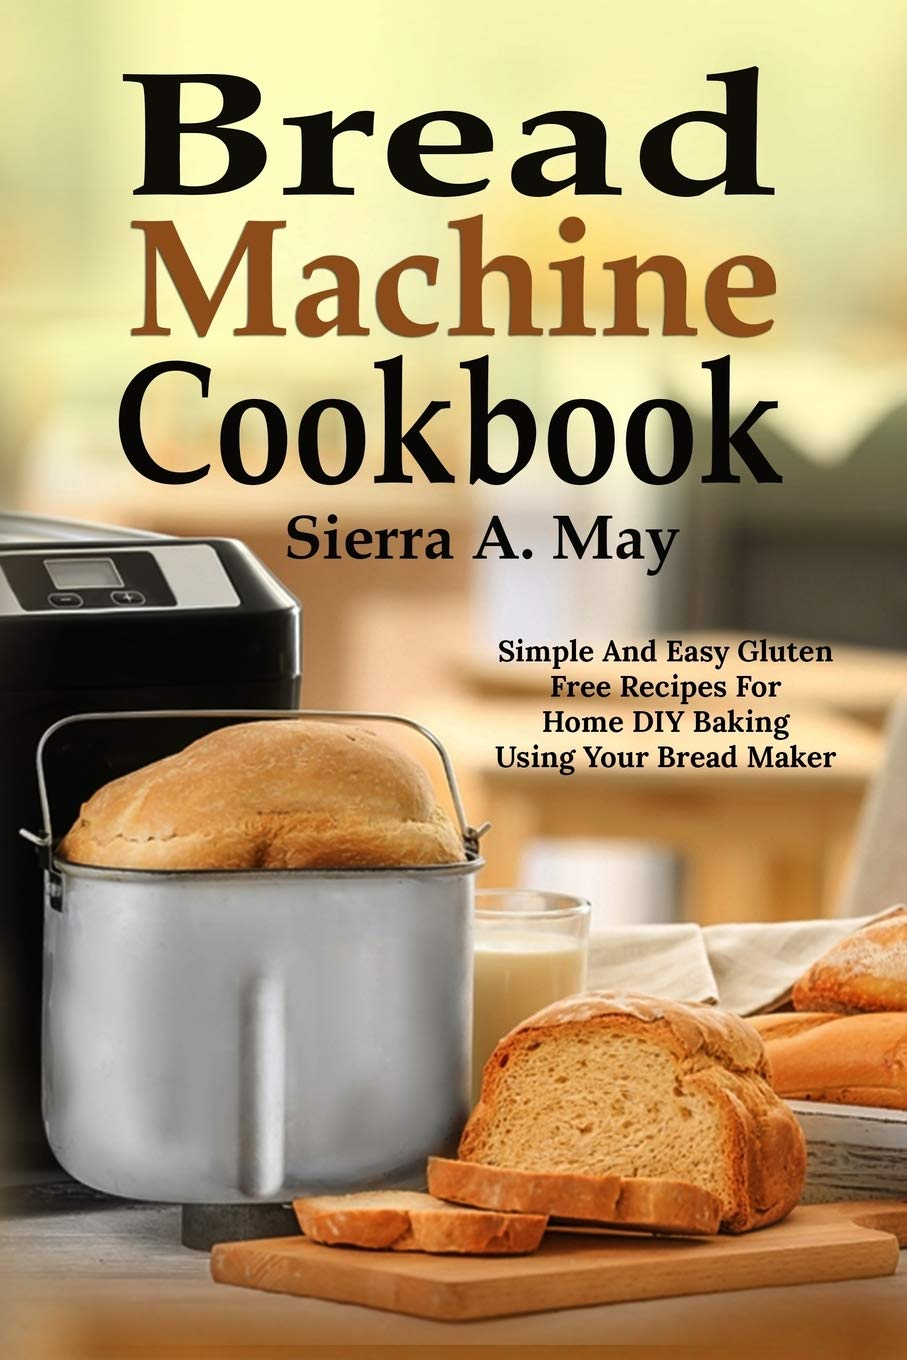 Bread Machine Cookbook Simple And Easy Gluten Free Recipes